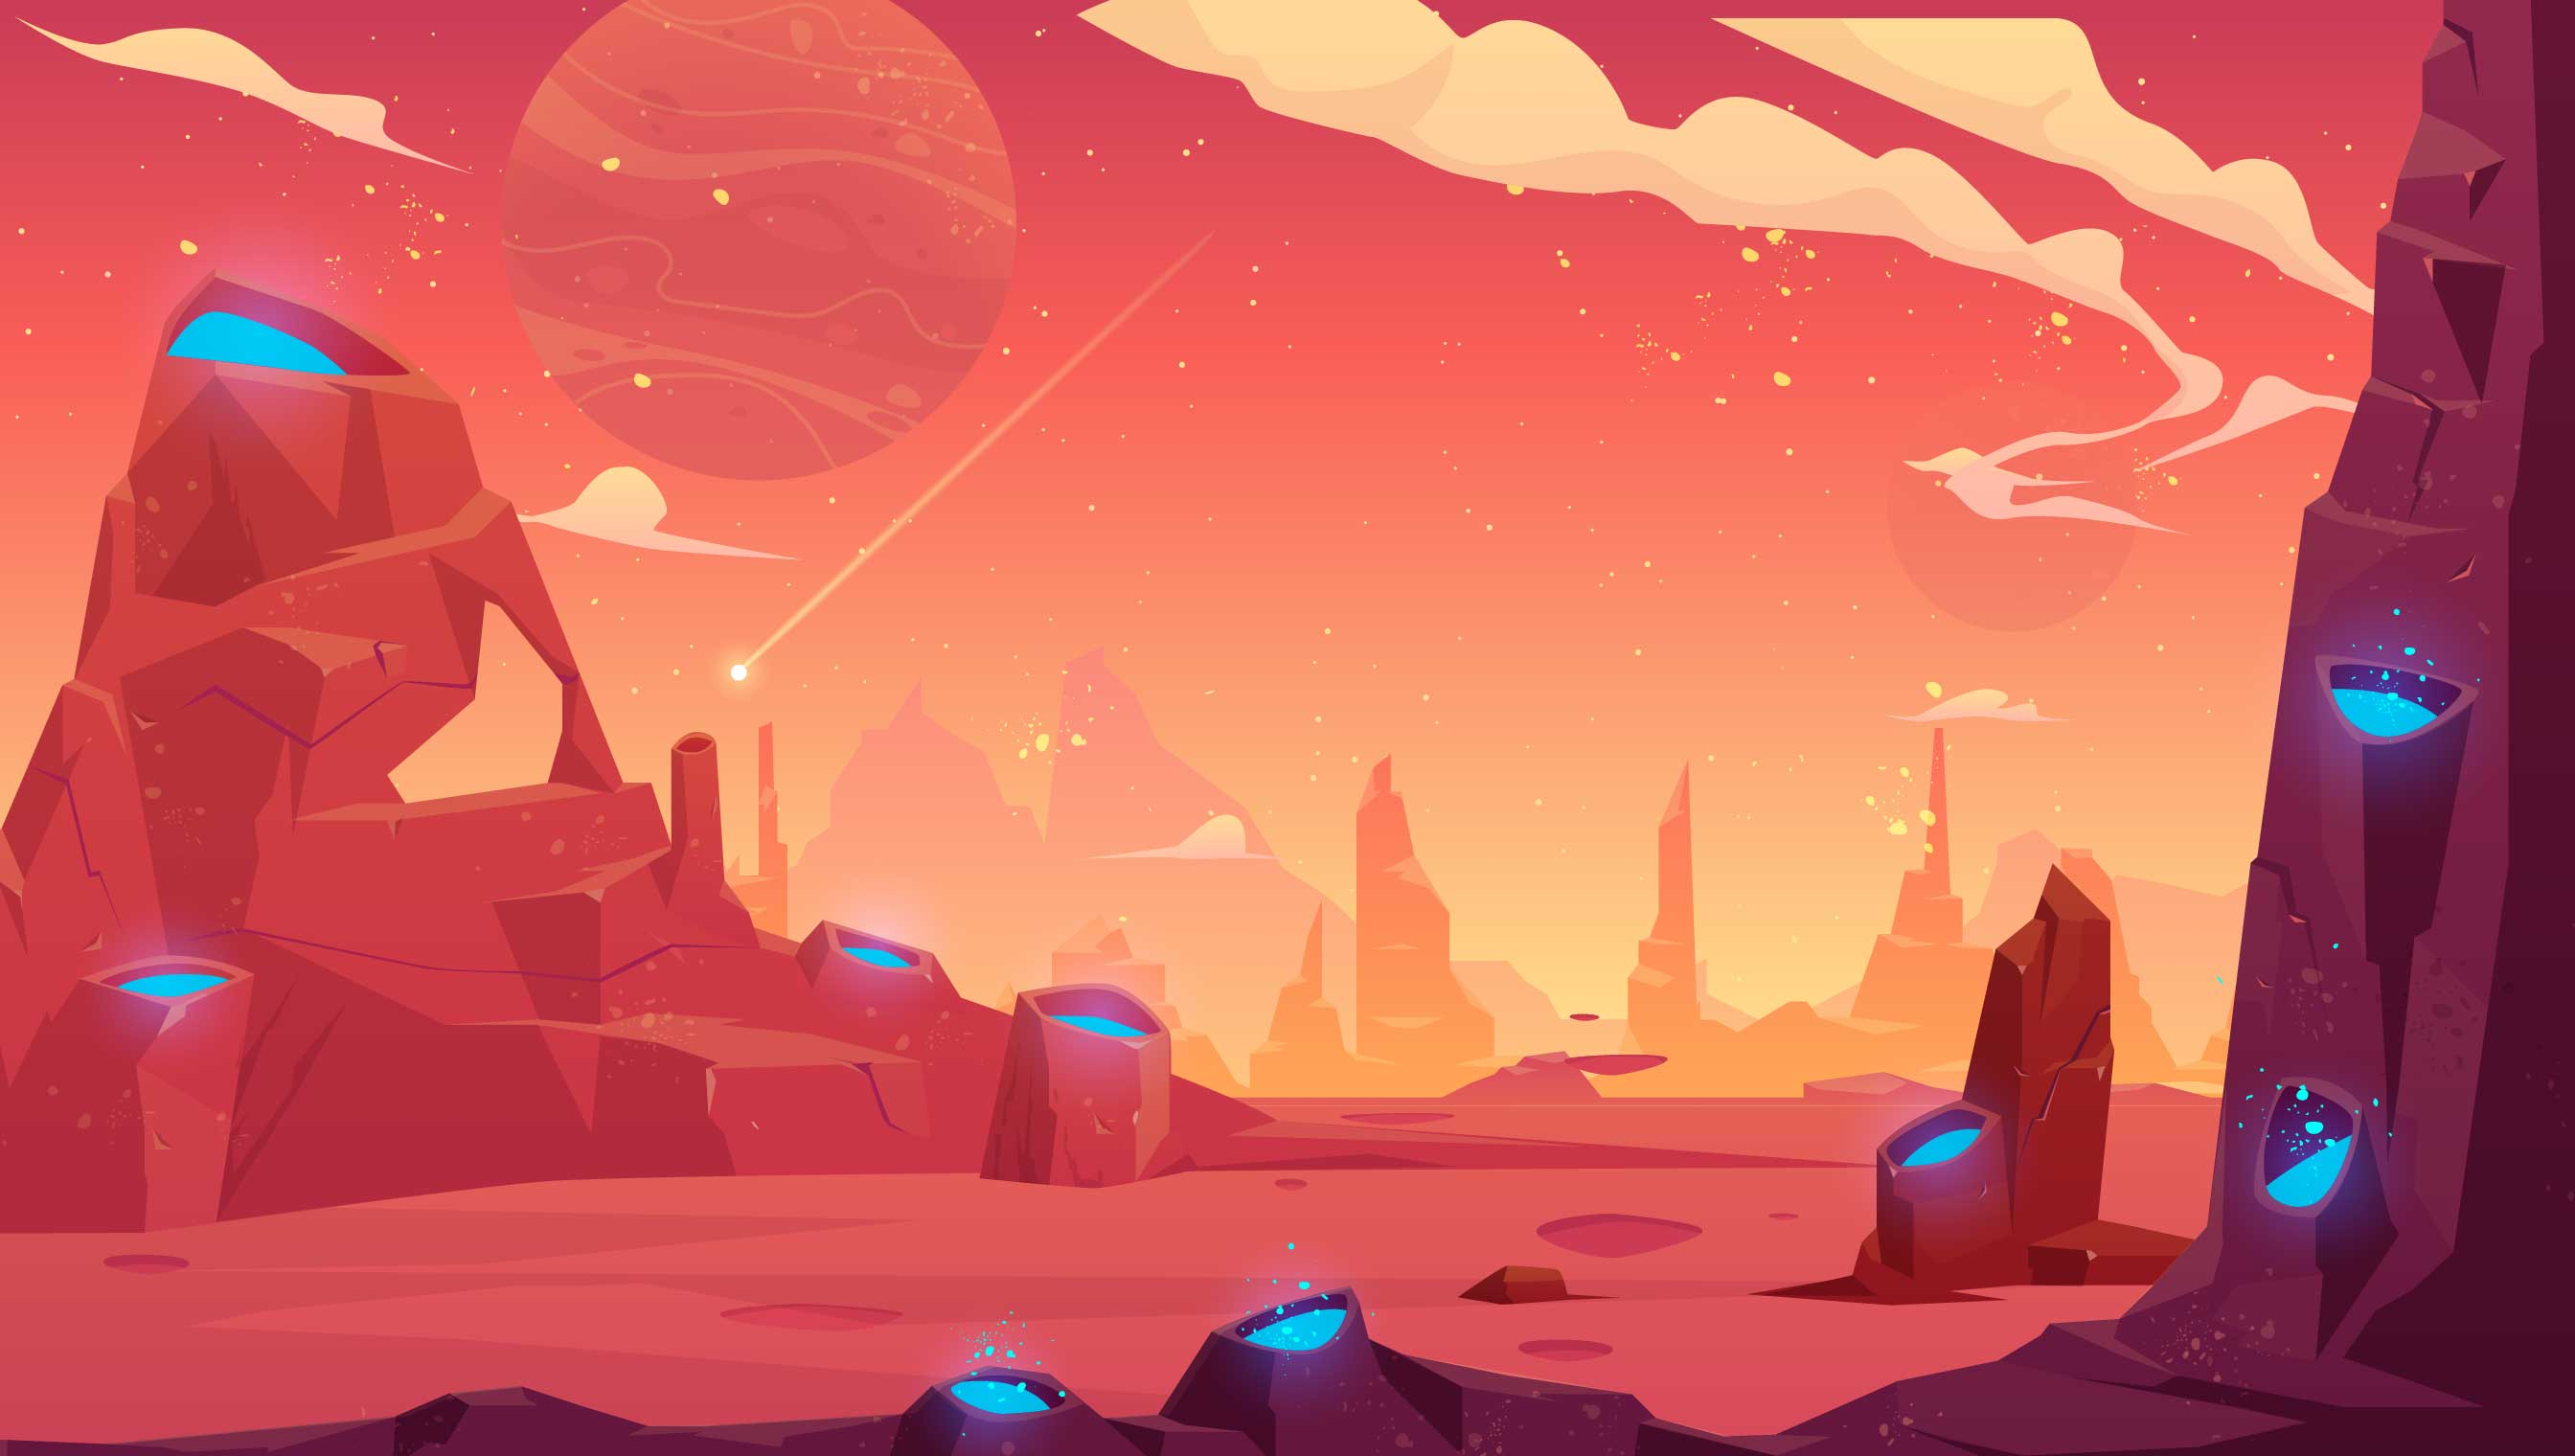 background scene - Space Background 11